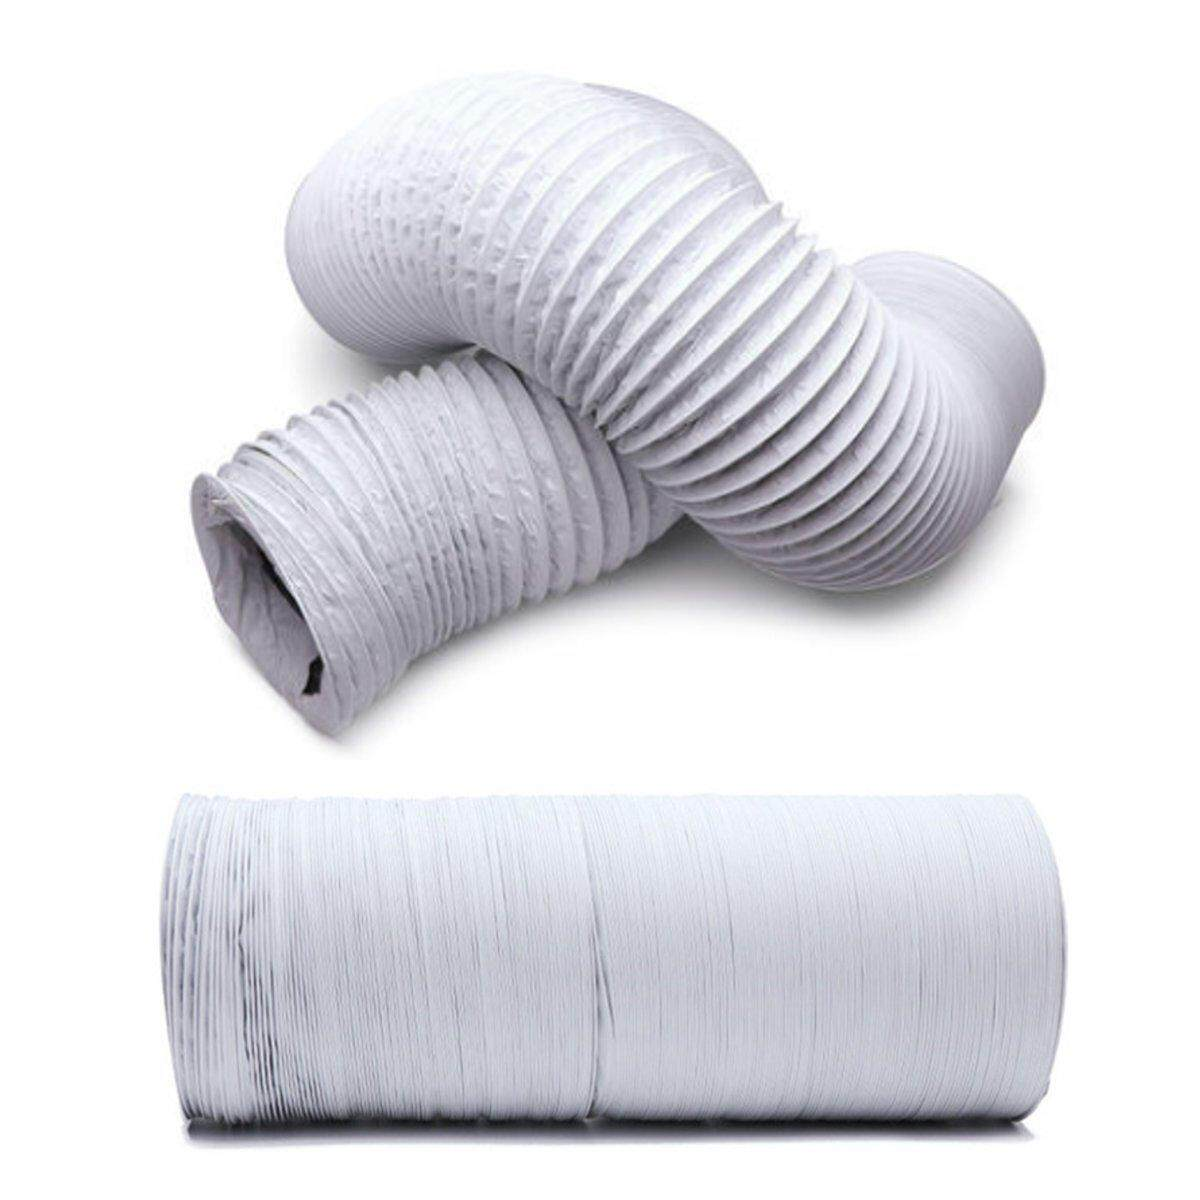 7m Flexible Air Conditioner Spare Parts Exhaust Pipe Vent Hose Outlet 250mm By Glimmer.